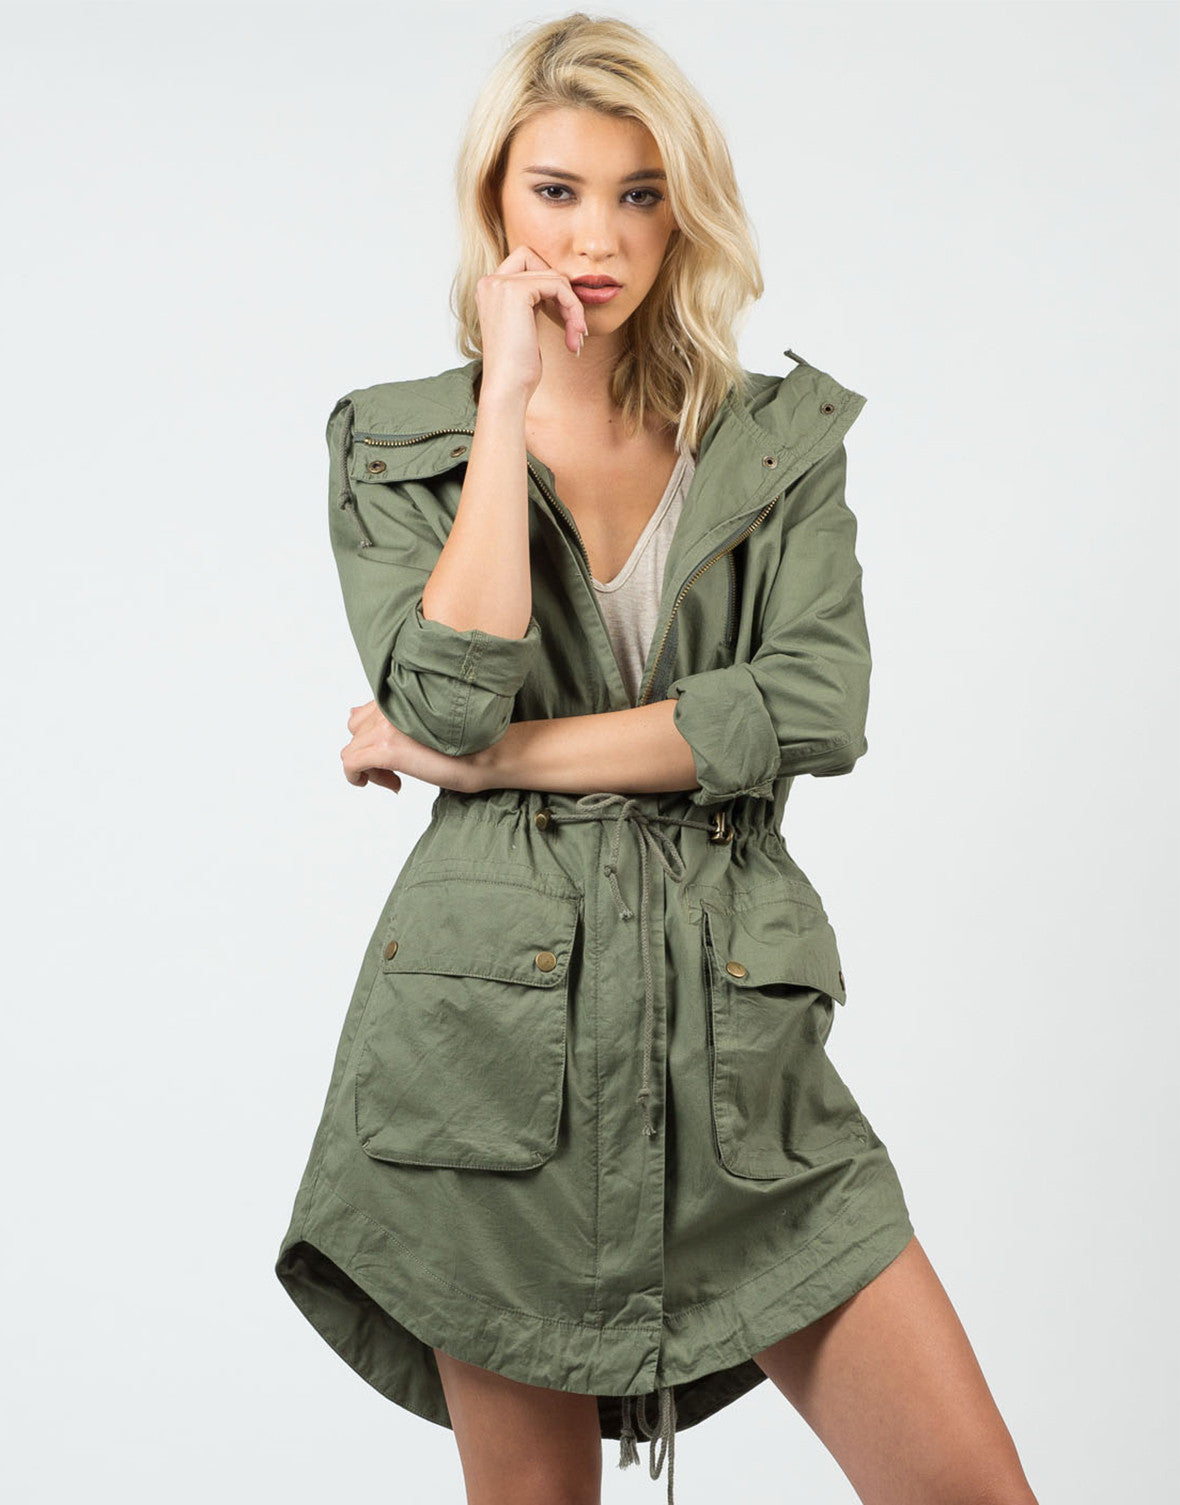 Front View of Military Anorak Jacket